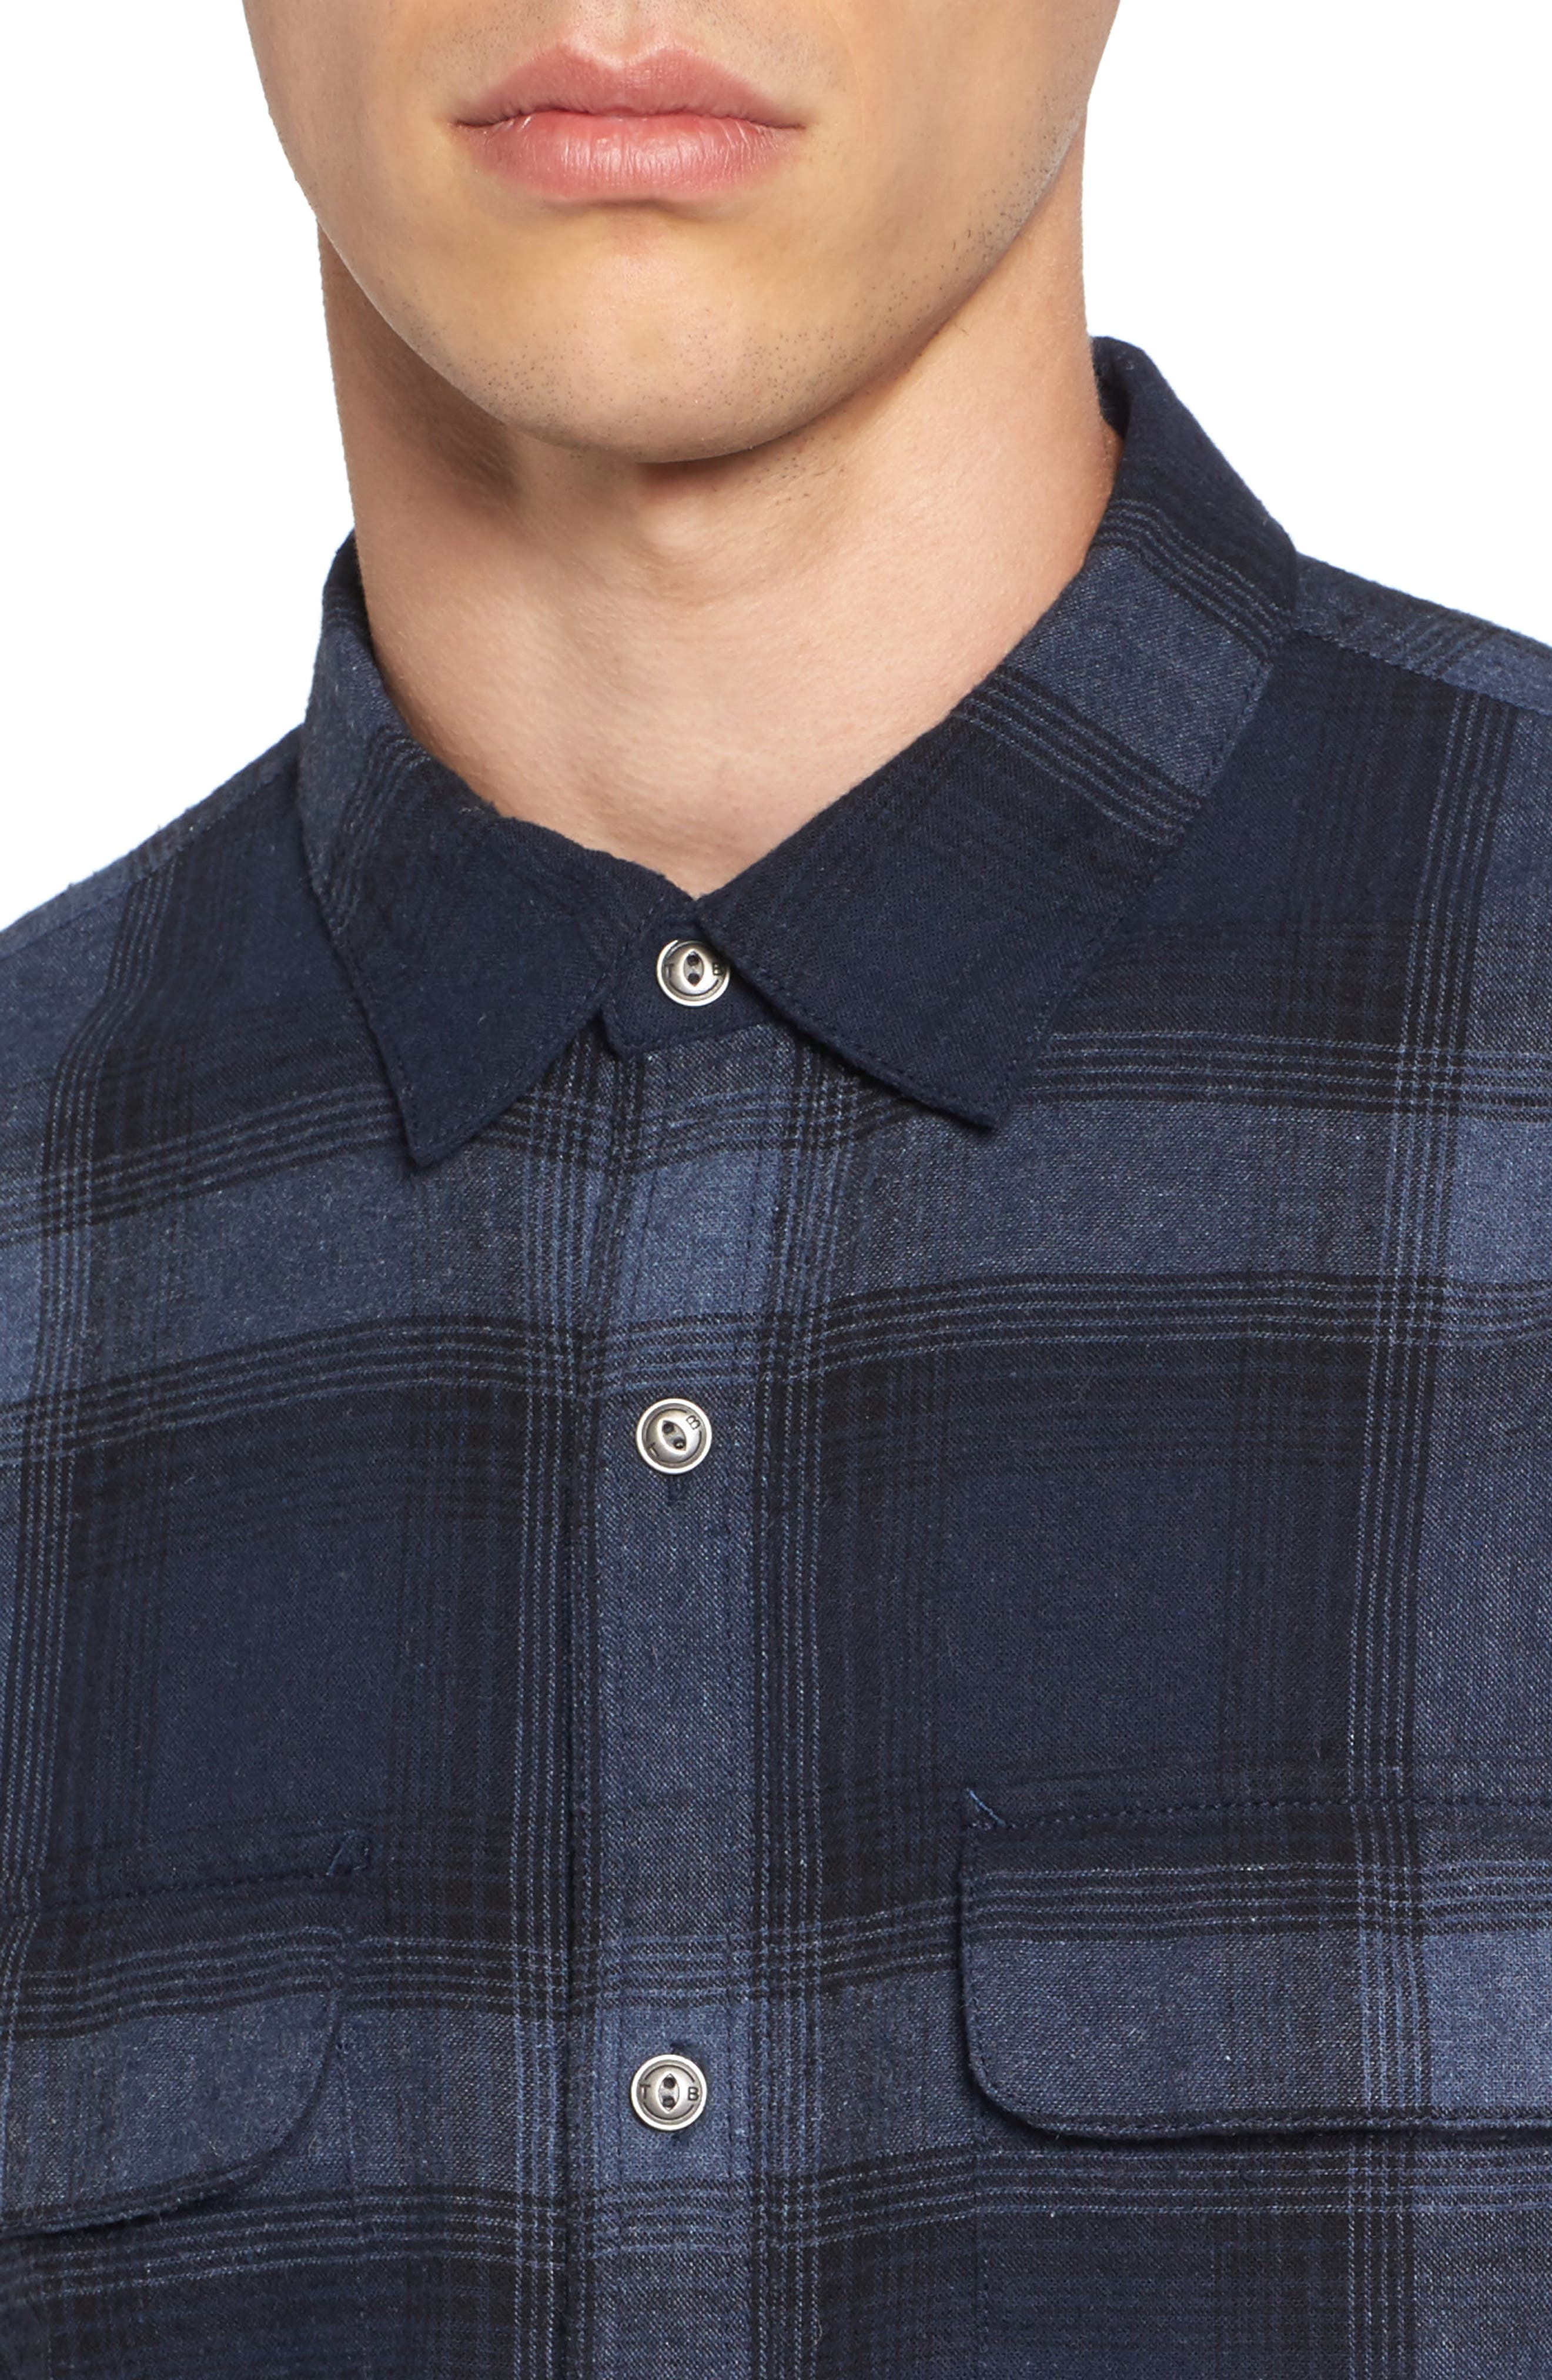 Owen Plaid Flannel Sport Shirt,                             Alternate thumbnail 4, color,                             410